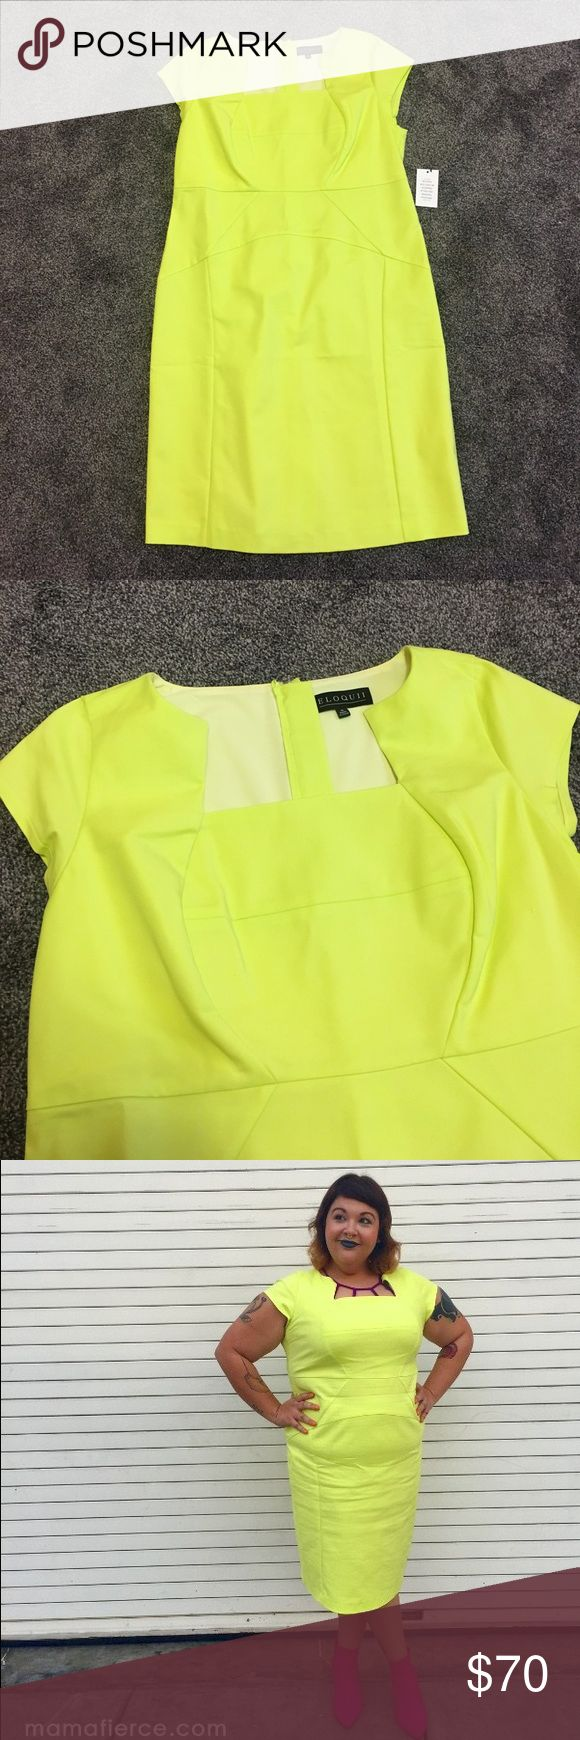 Neon yellow pencil dress Never worn! (This is not the same one I'm wearing in the picture.) Slight stretch. Zipper back. PERFECT CONDITION. Eloquii Dresses Midi